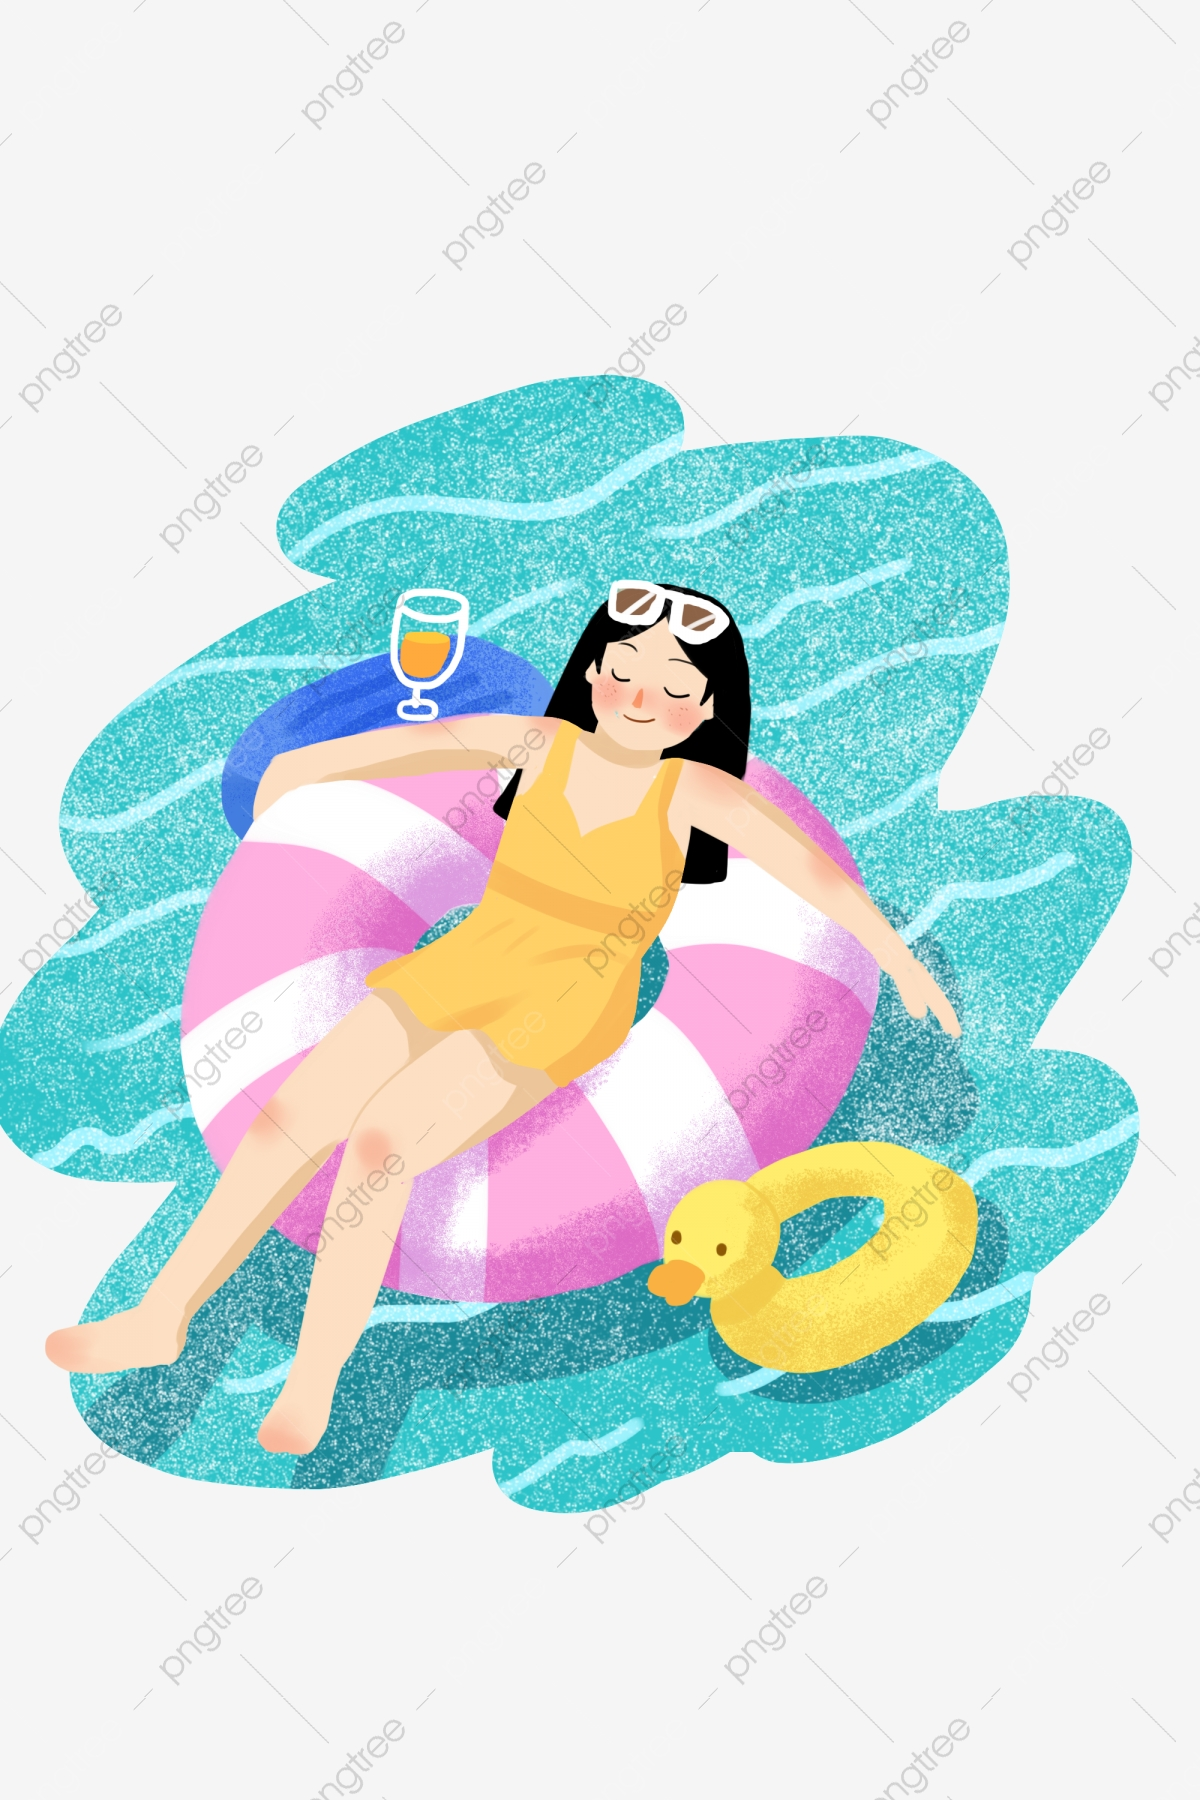 drinks clipart pool